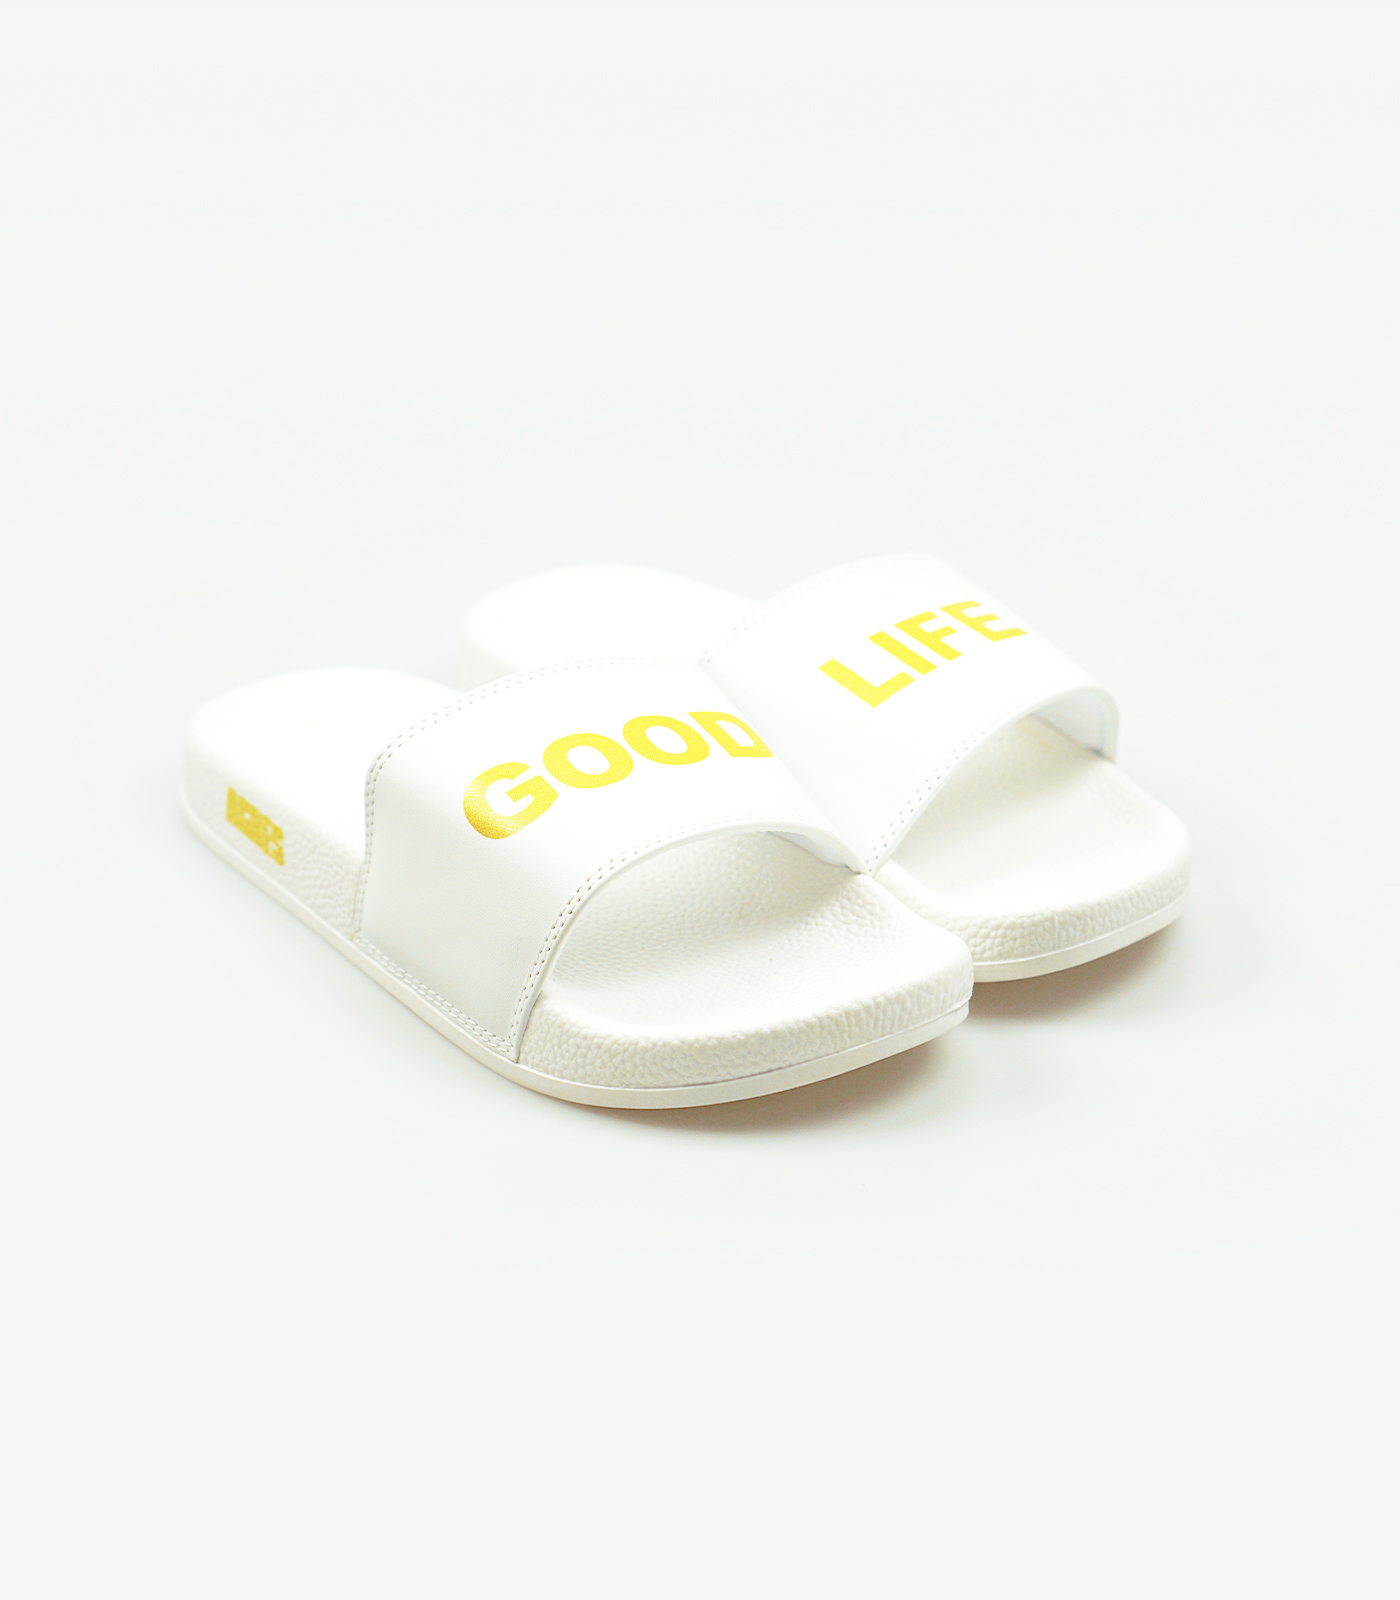 White Goodlife Slides